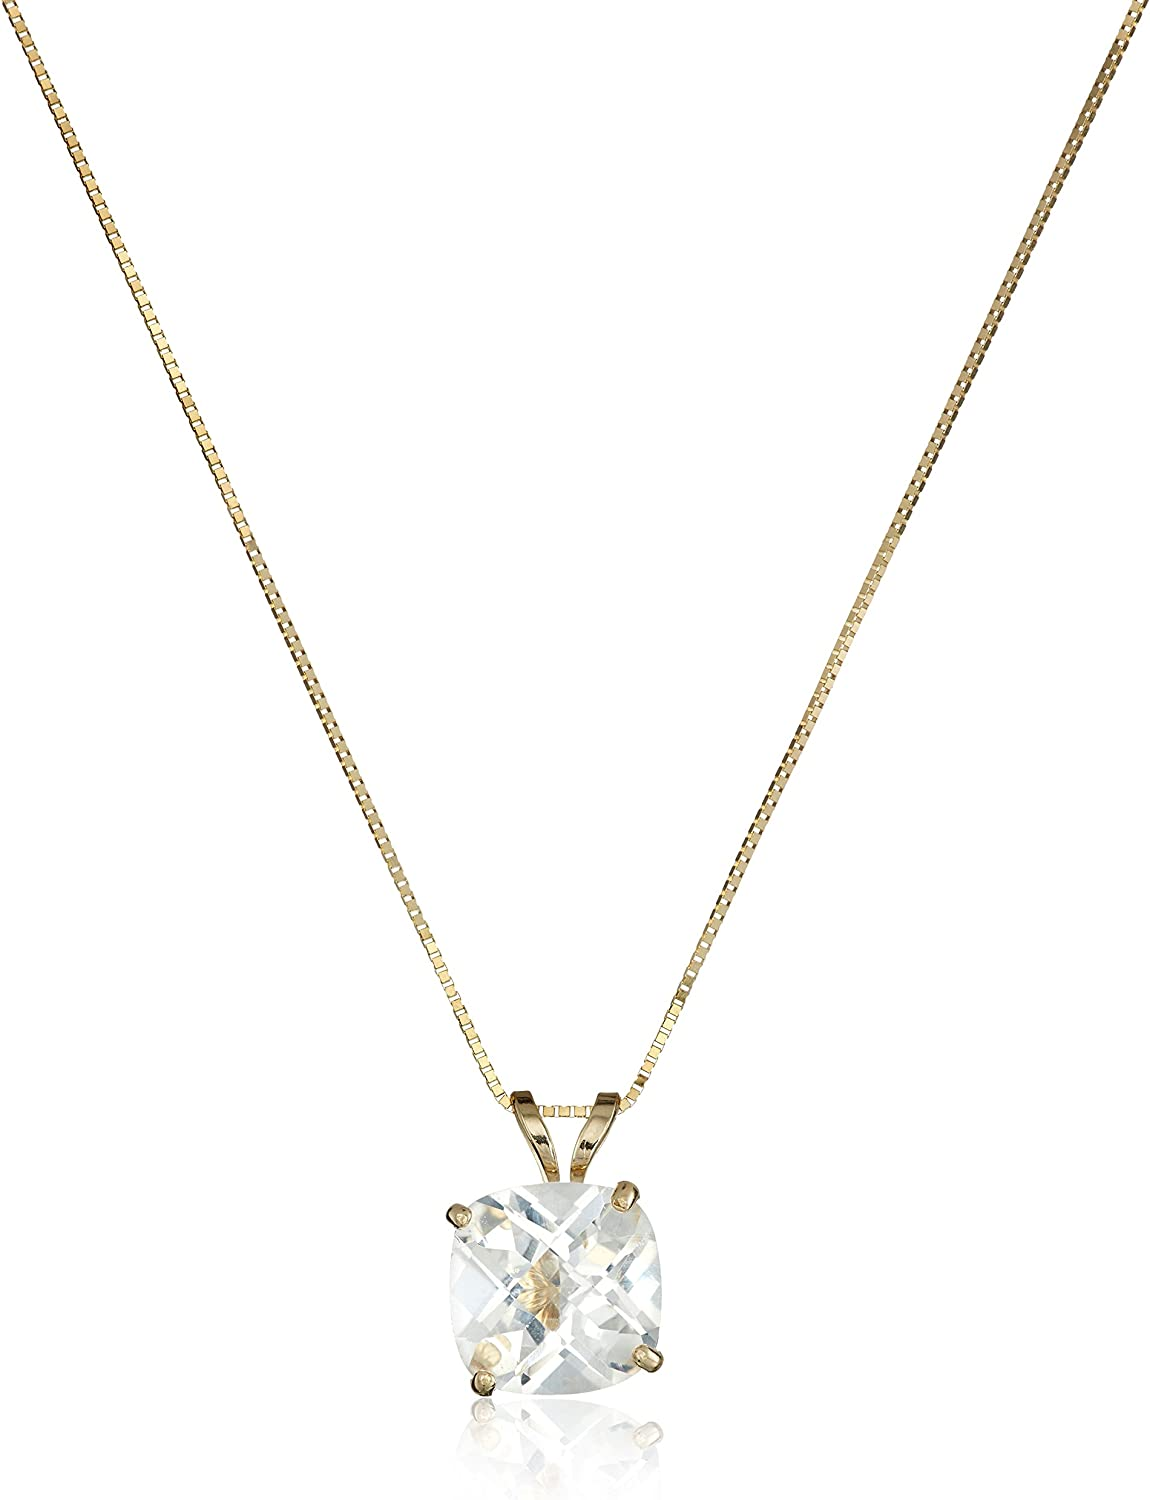 14k Gold cheap Cushion Checkerboard Cut 8mm Gemstone 2021 autumn and winter new Necklace Pendant